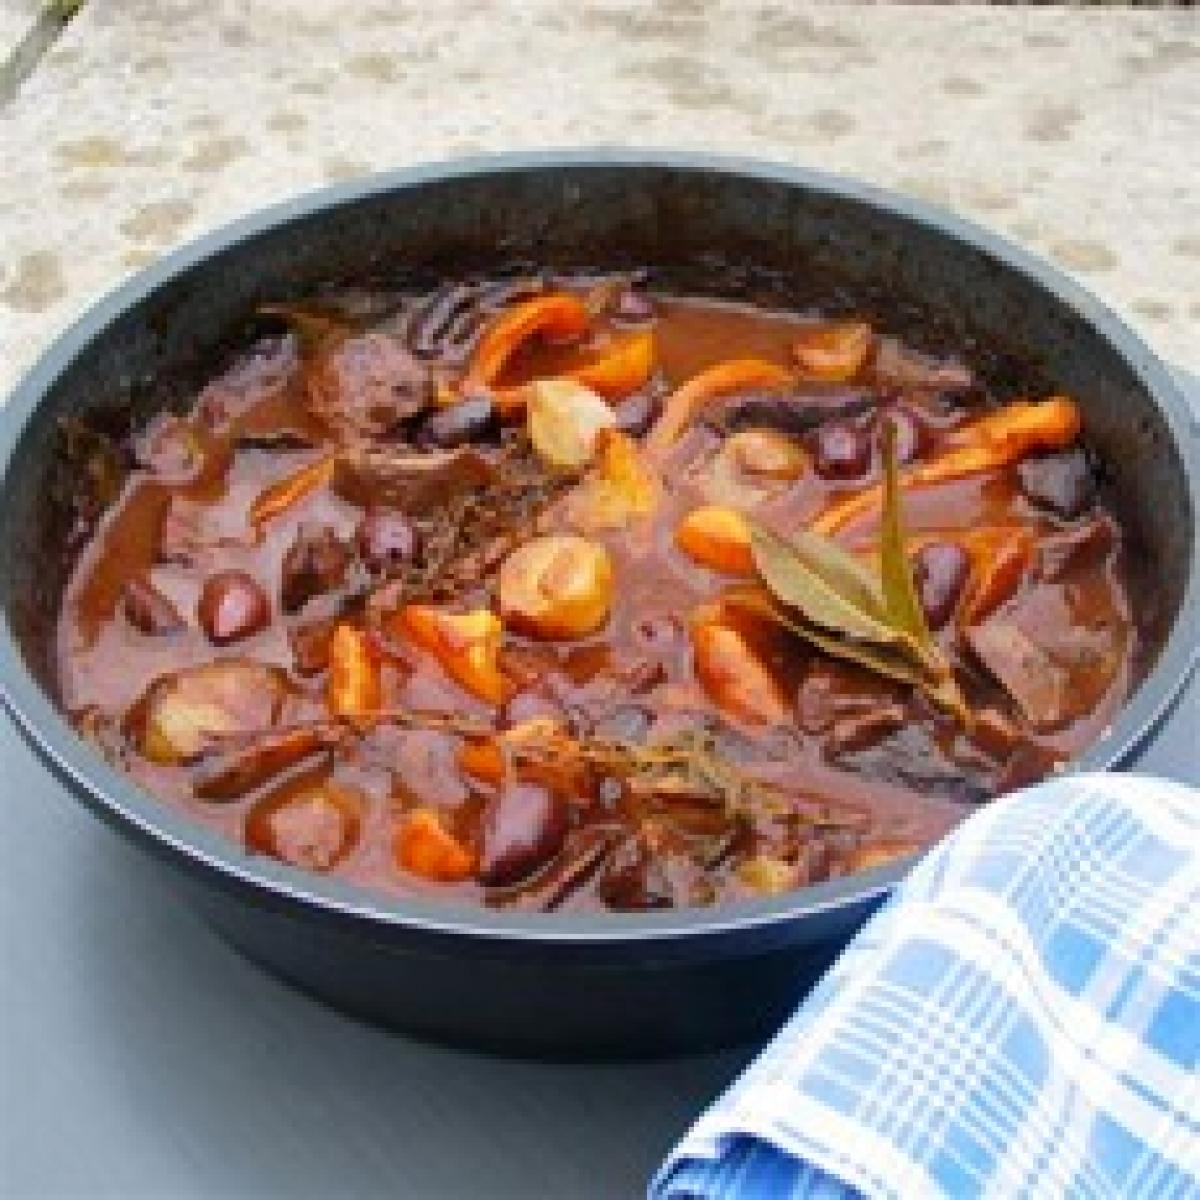 A picture of Delia's A Provençal Winter Stew recipe